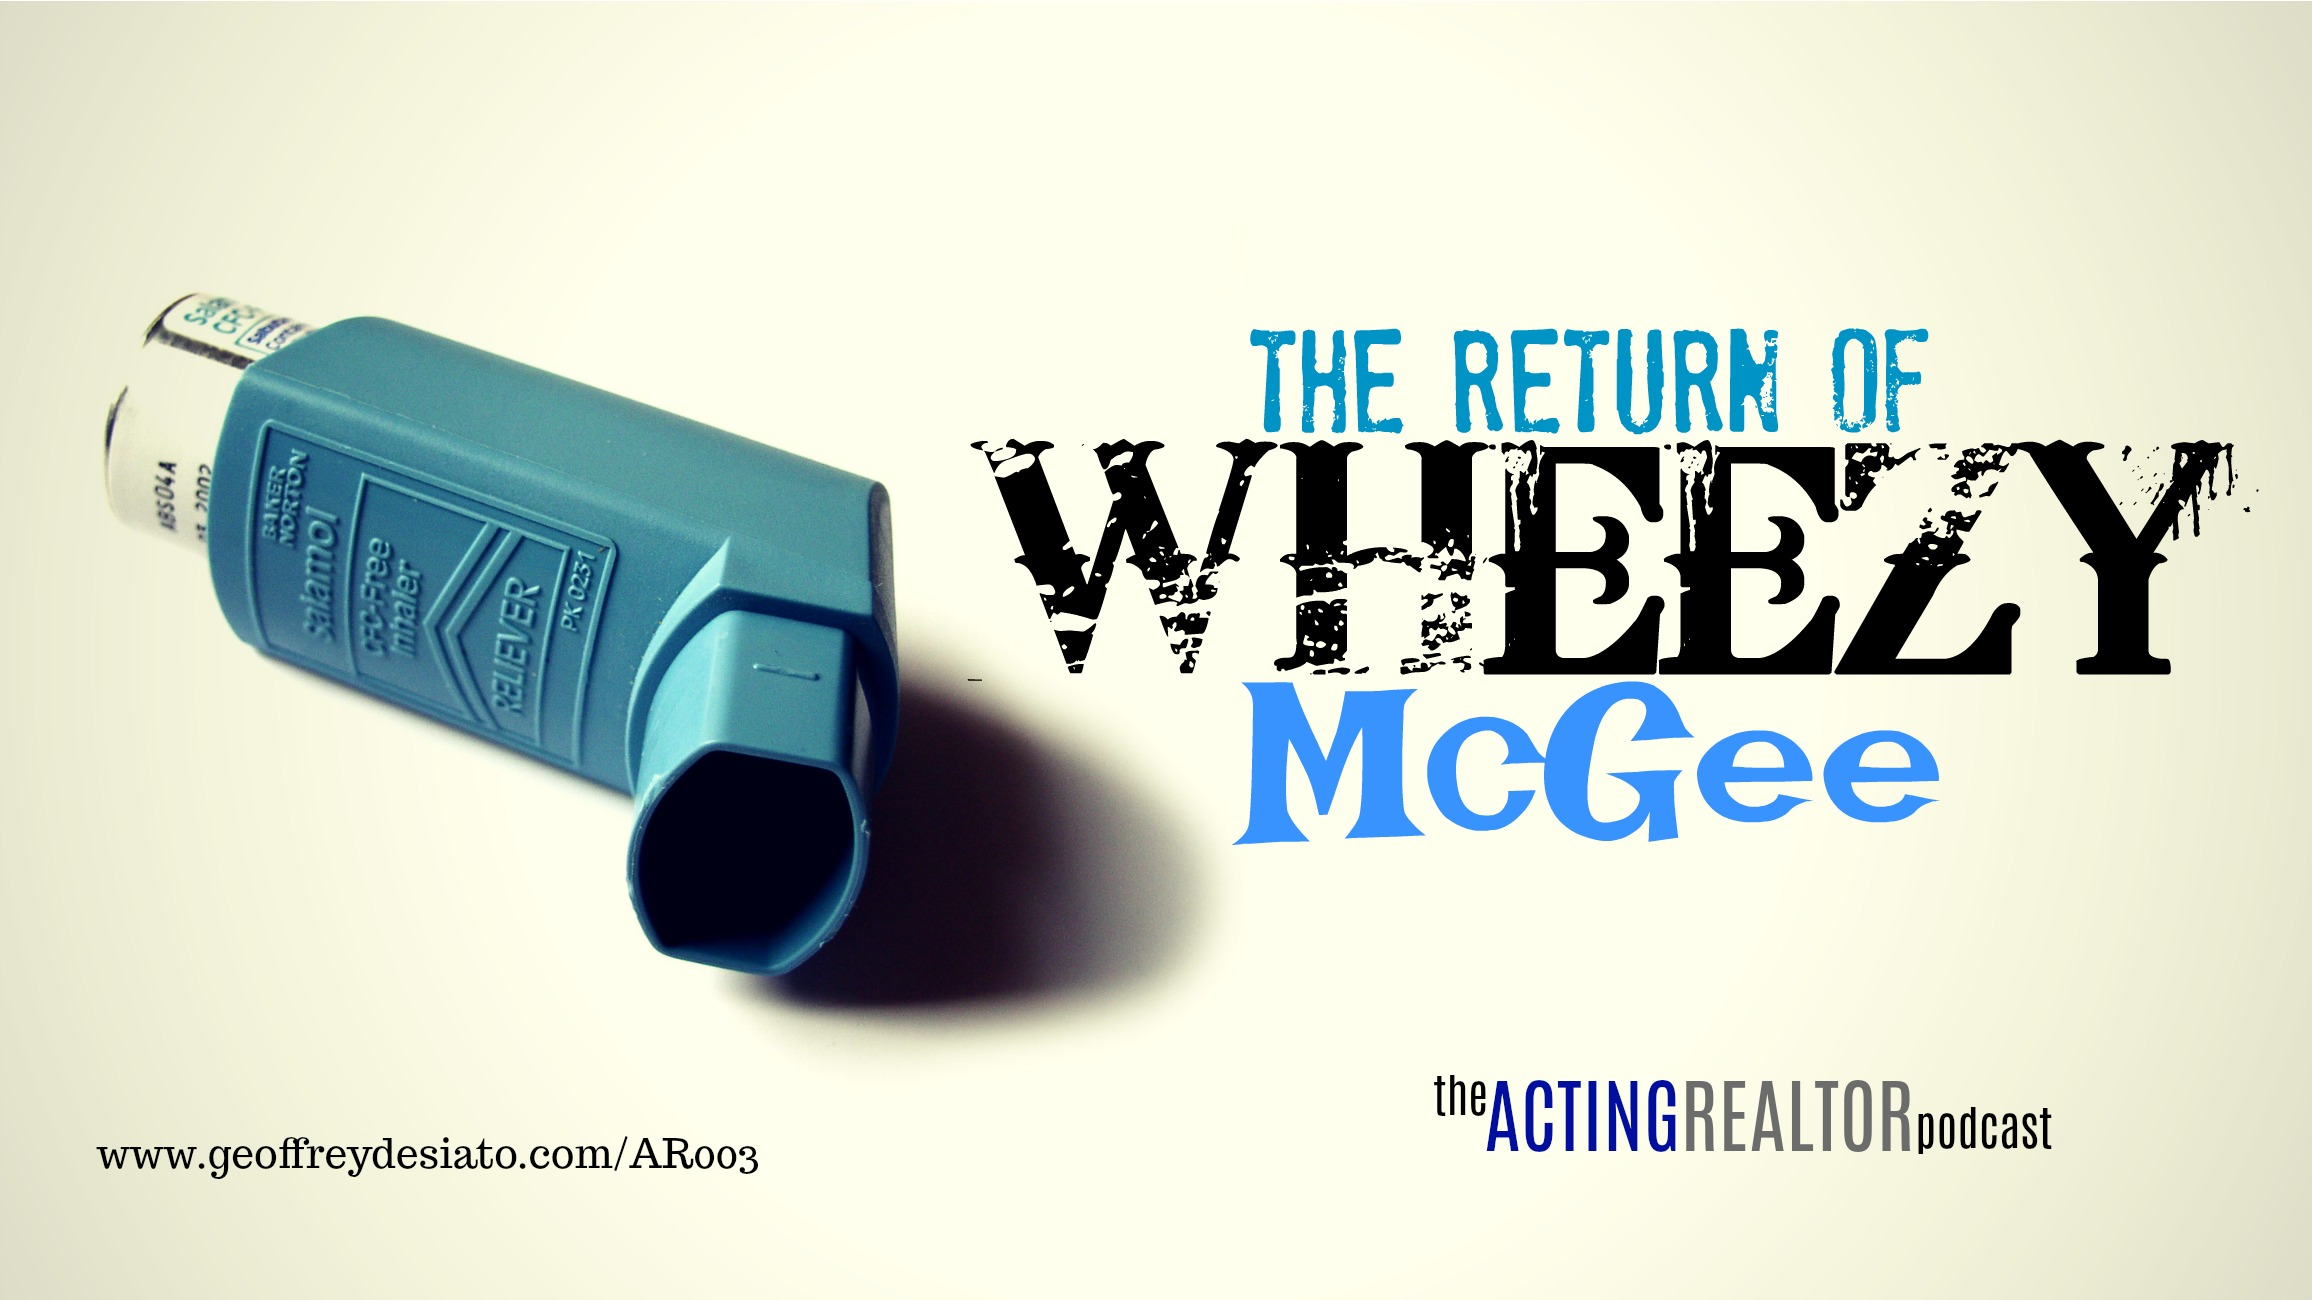 The Return of Wheezy McGee